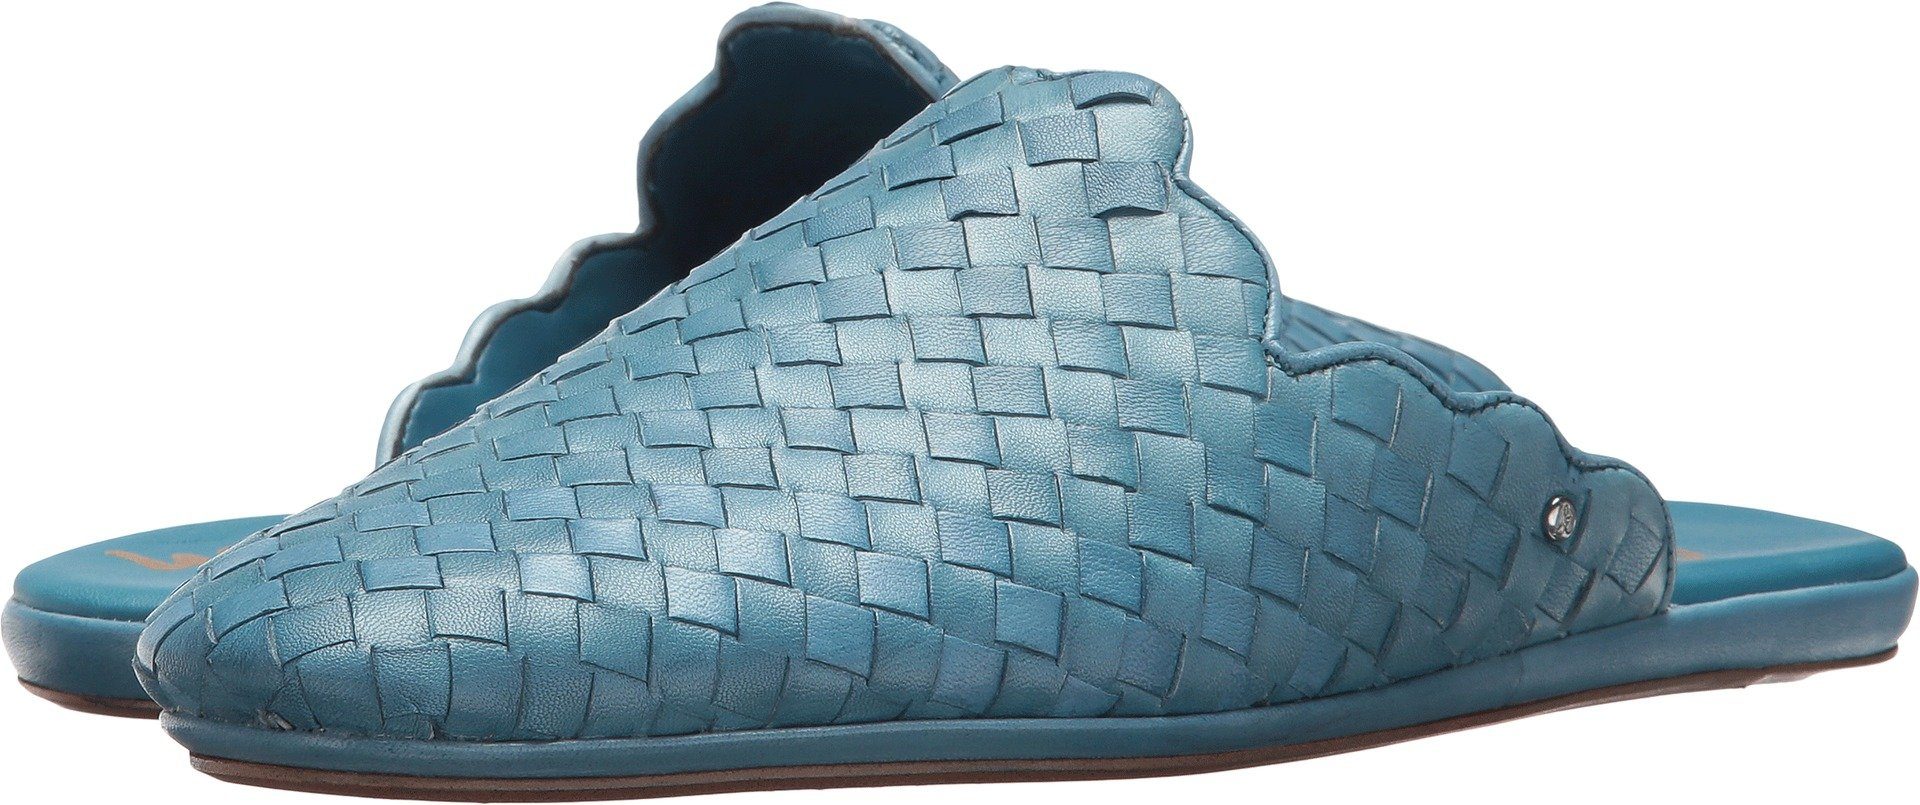 Sam Edelman Women's Katy Moroccan Blue Woven Leather 10.5 M US